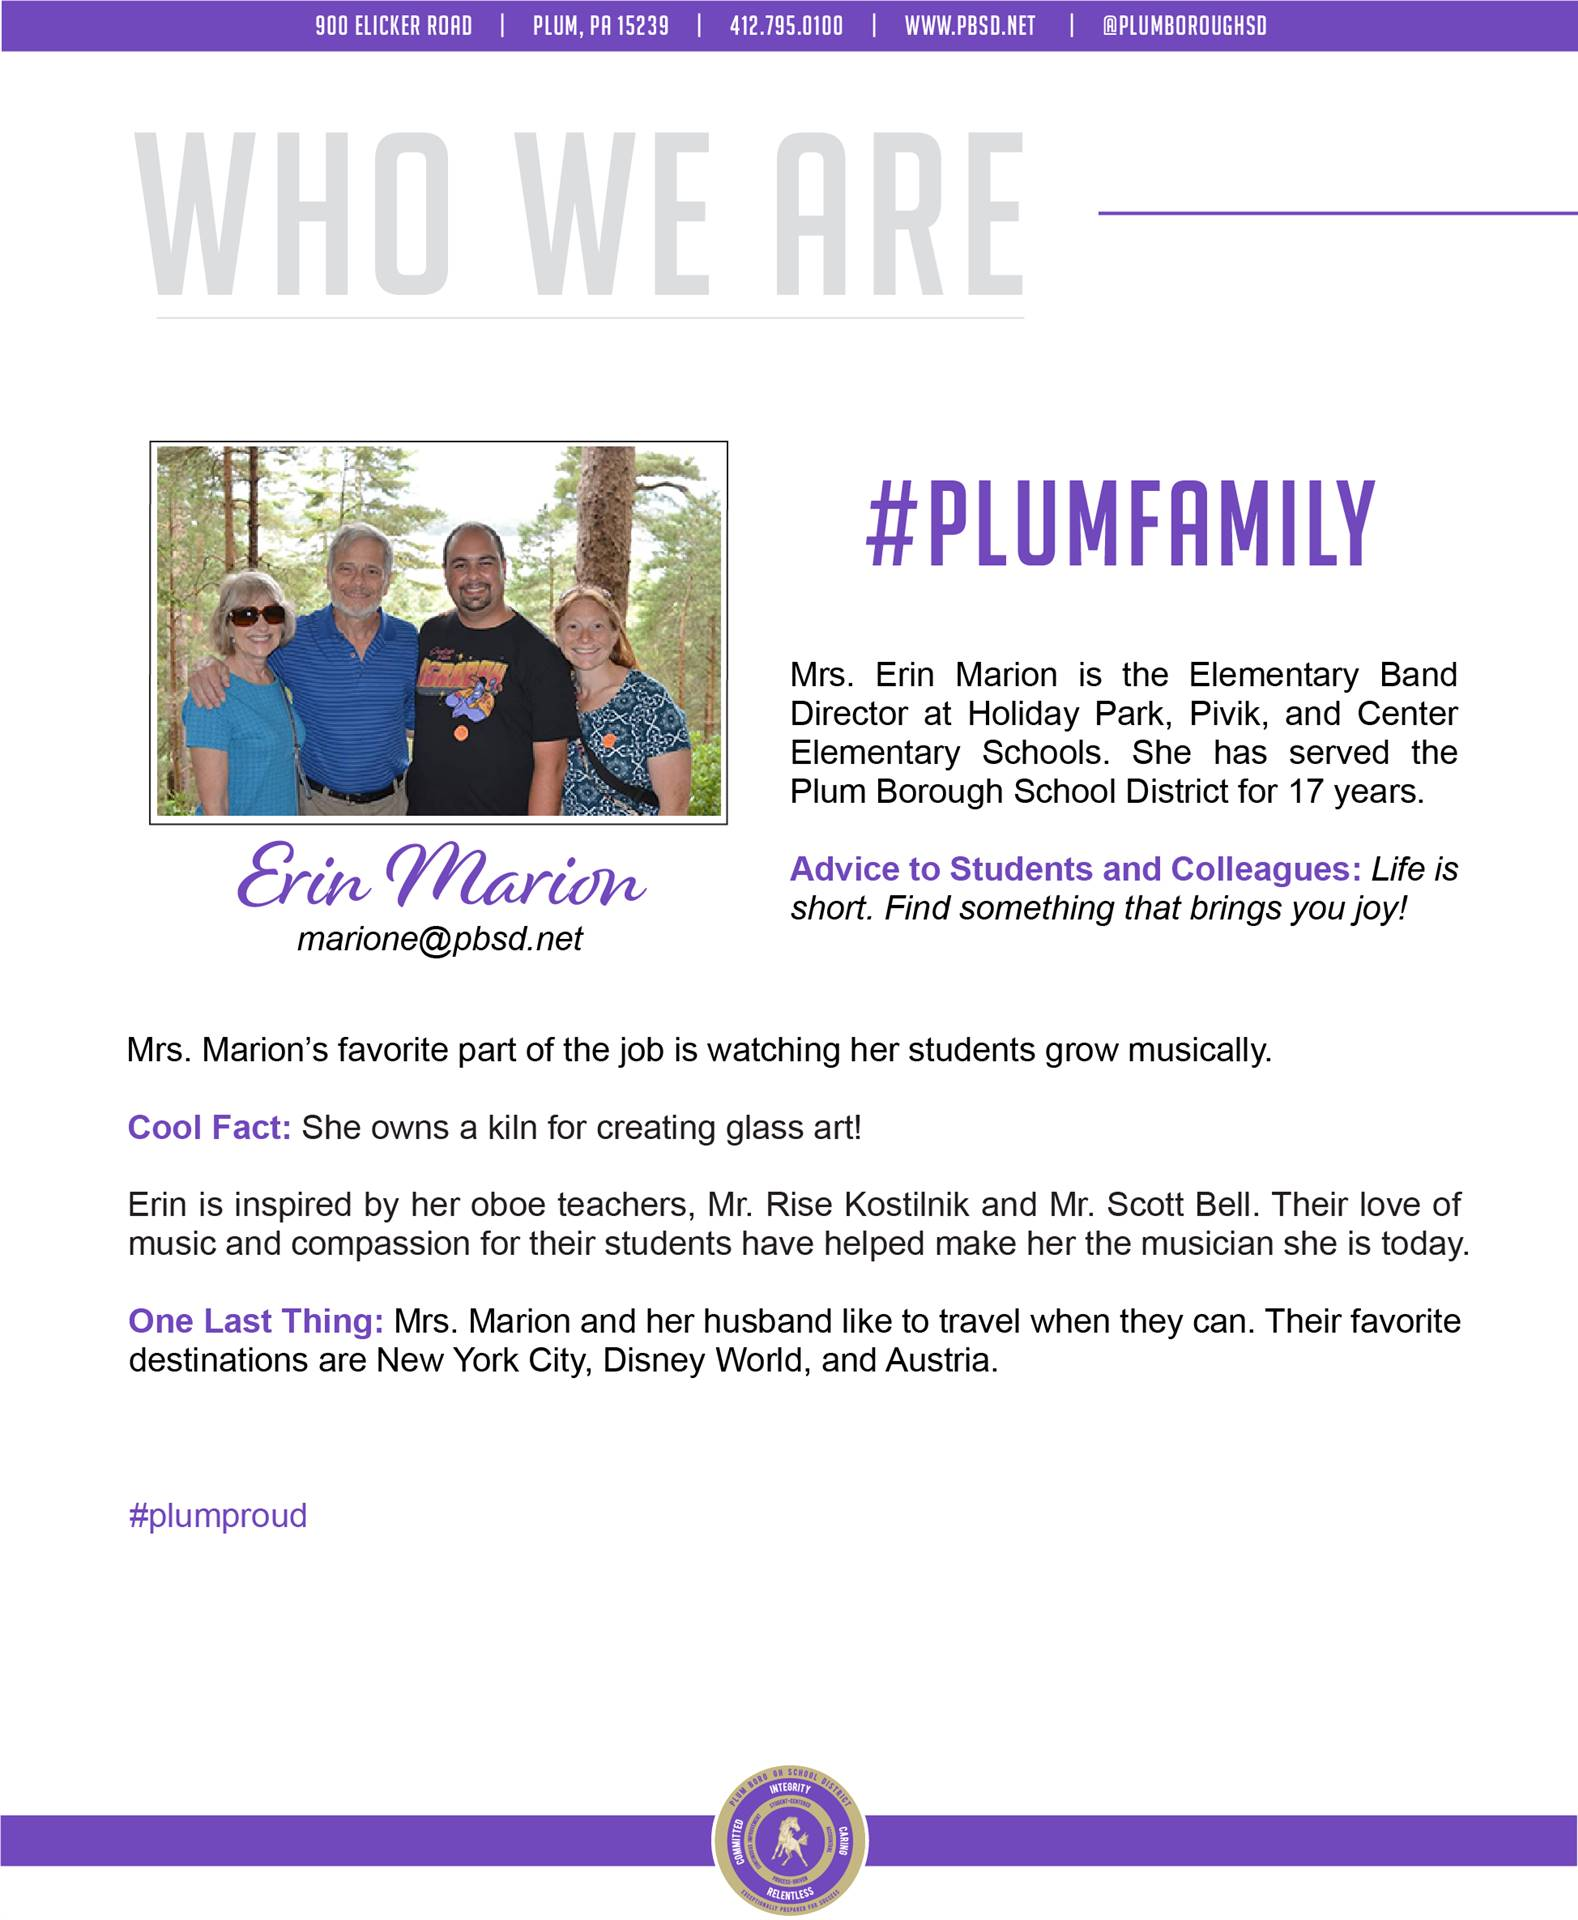 Who We Are Wednesday features Erin Marion.